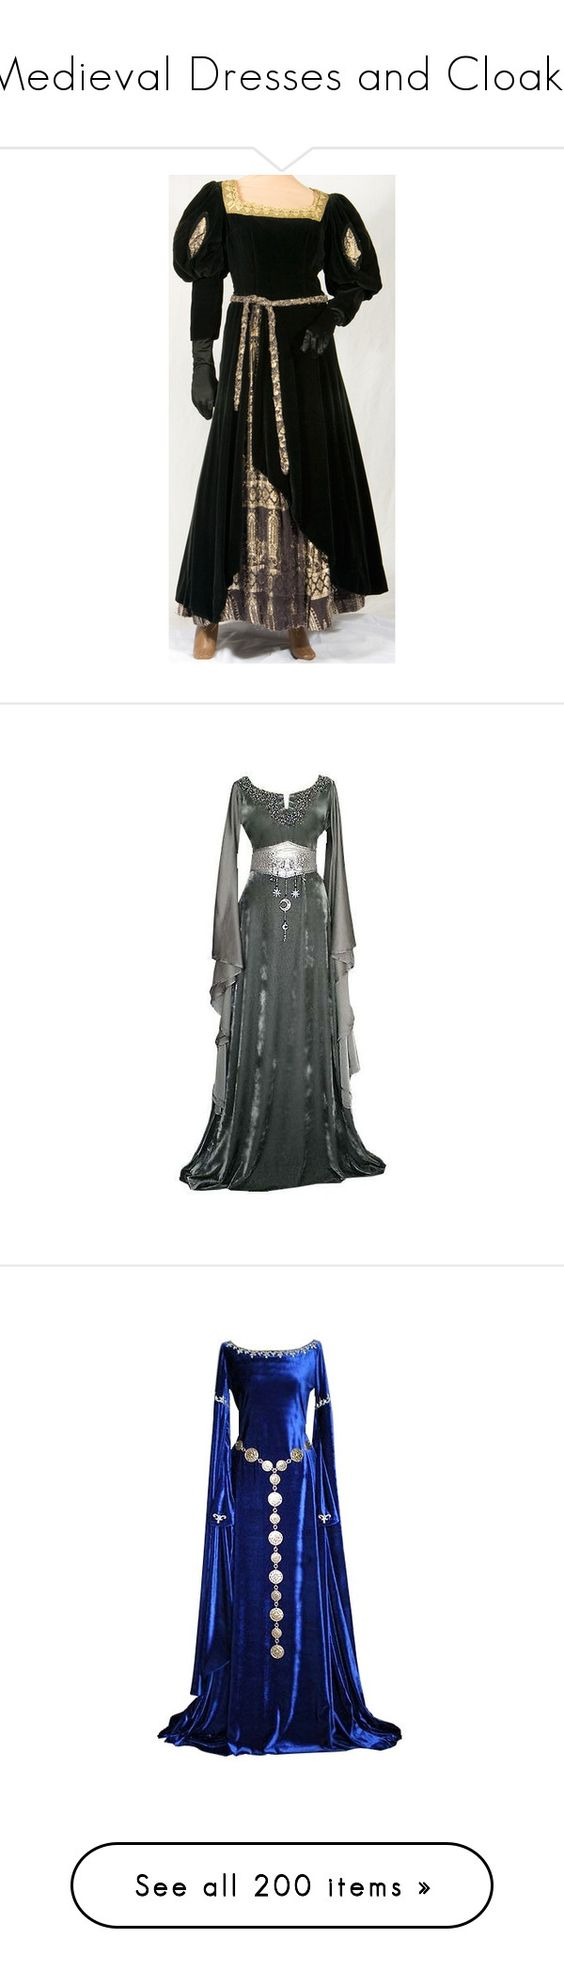 """""""Medieval Dresses and Cloaks"""" by xx-black-blade-xx ❤ liked on Polyvore featuring costumes, dresses, medieval, renaissance, plus size renaissance costume, maid marian costume, plus size costumes, queen costume, renaissance princess costume and gowns"""